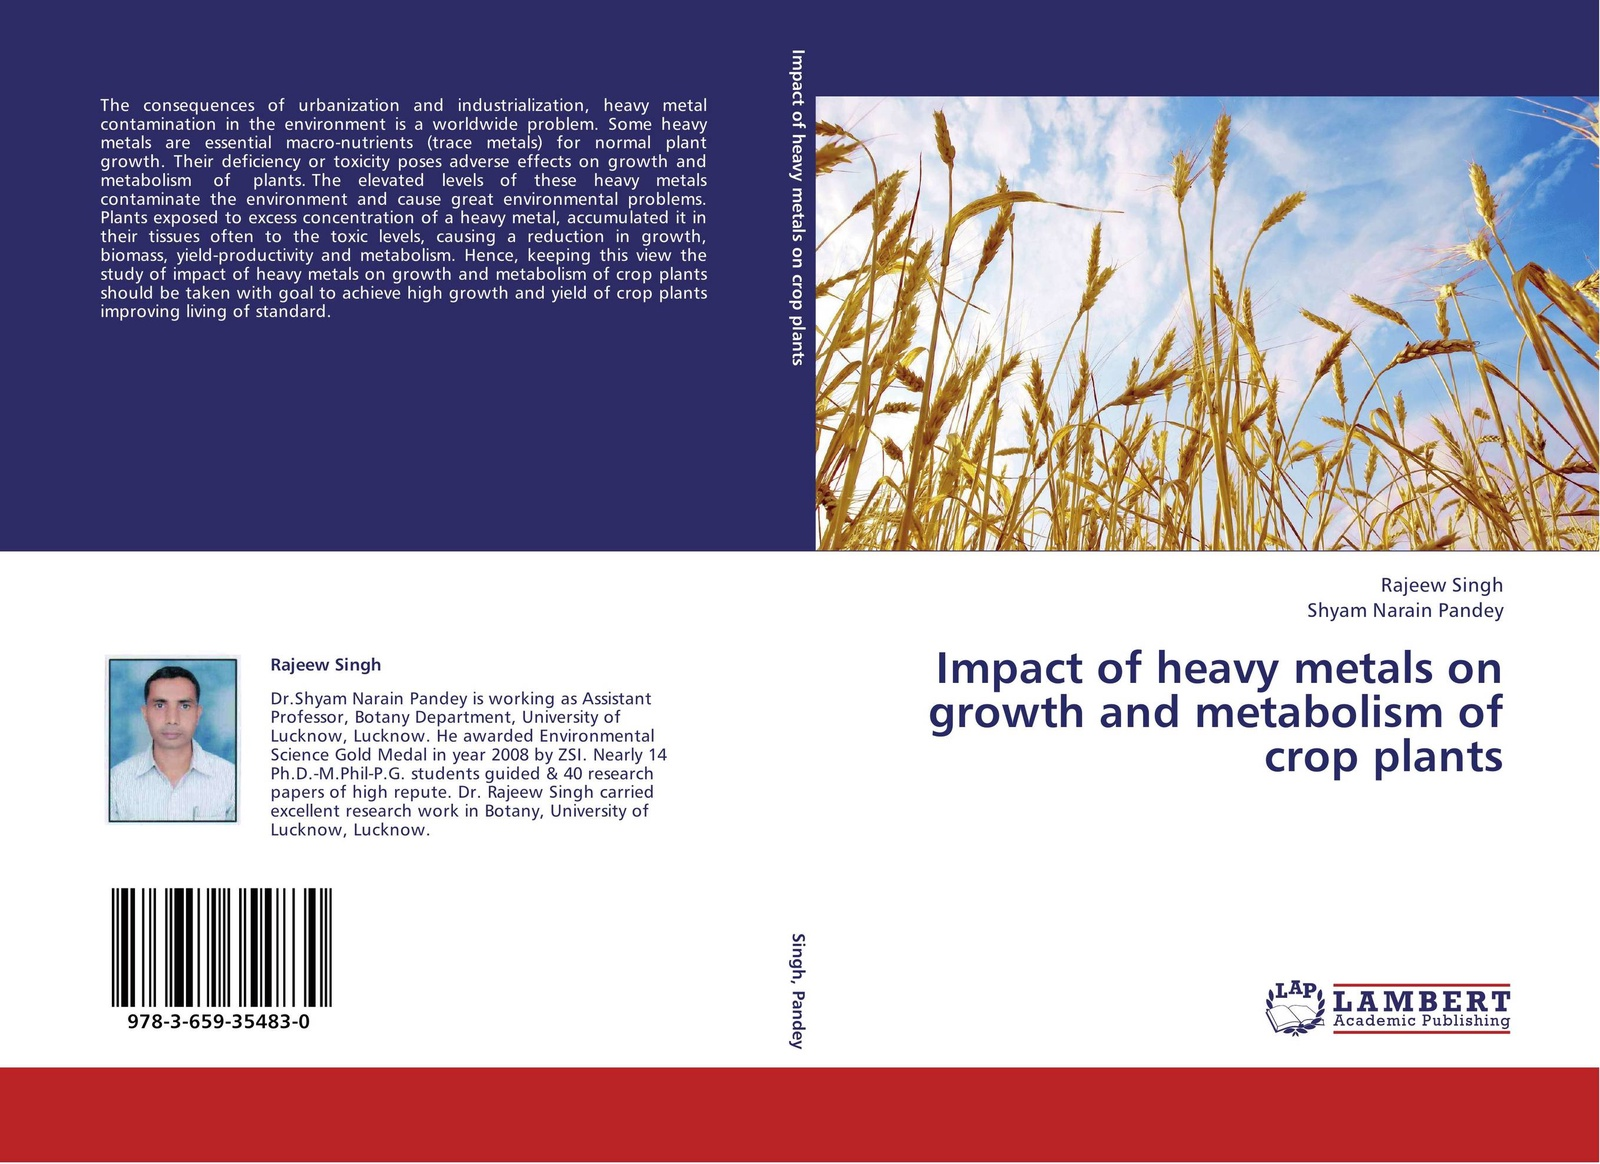 где купить Rajeew Singh and Shyam Narain Pandey Impact of heavy metals on growth and metabolism of crop plants дешево